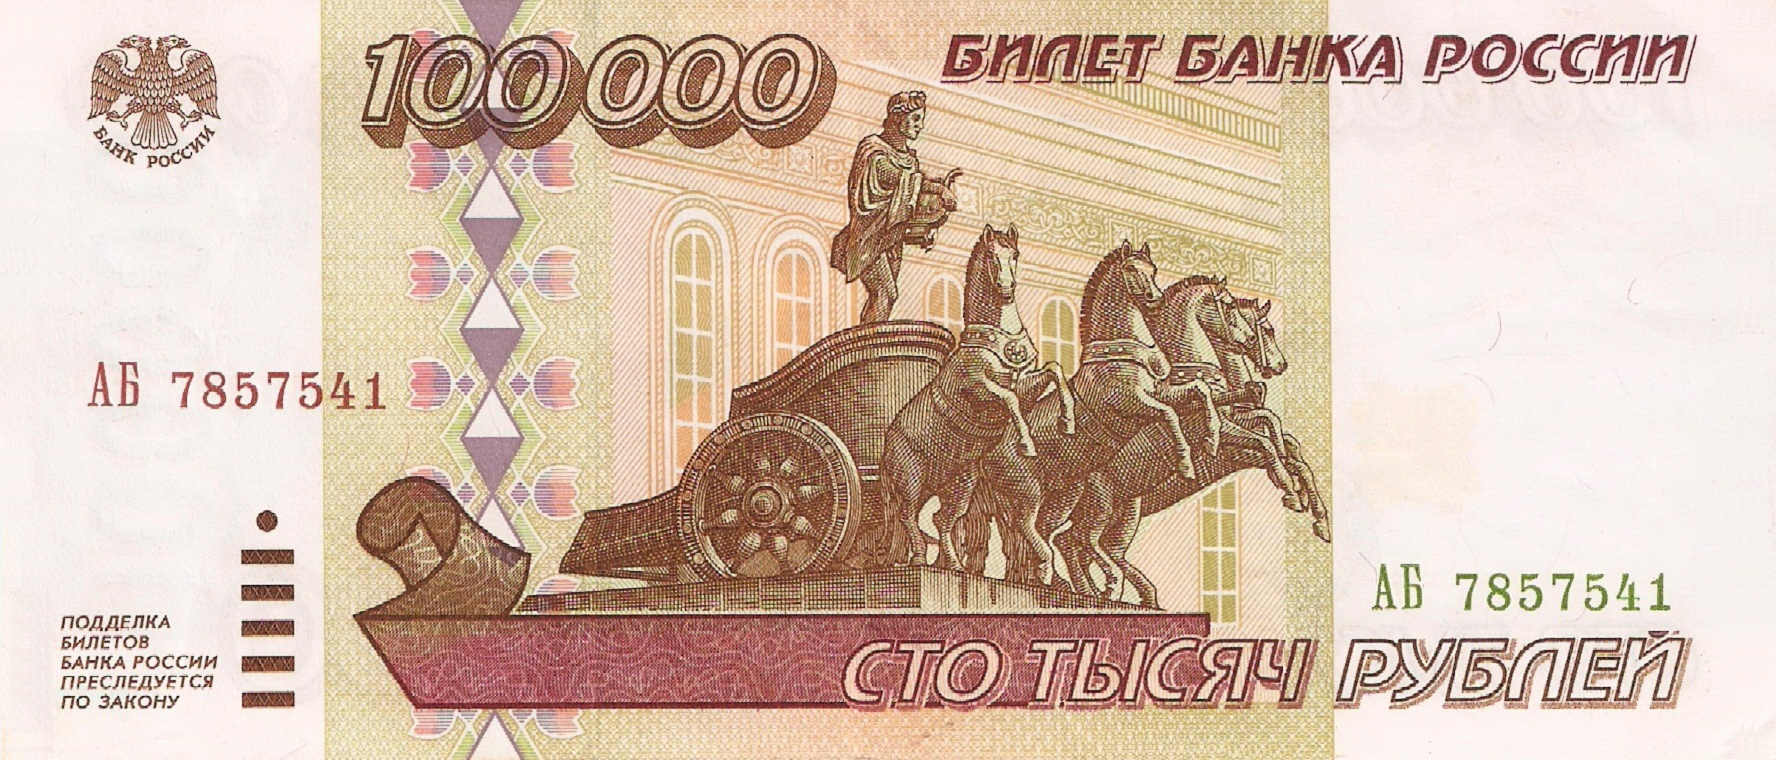 Banknote_100000_rubles_(1995)_front.jpg